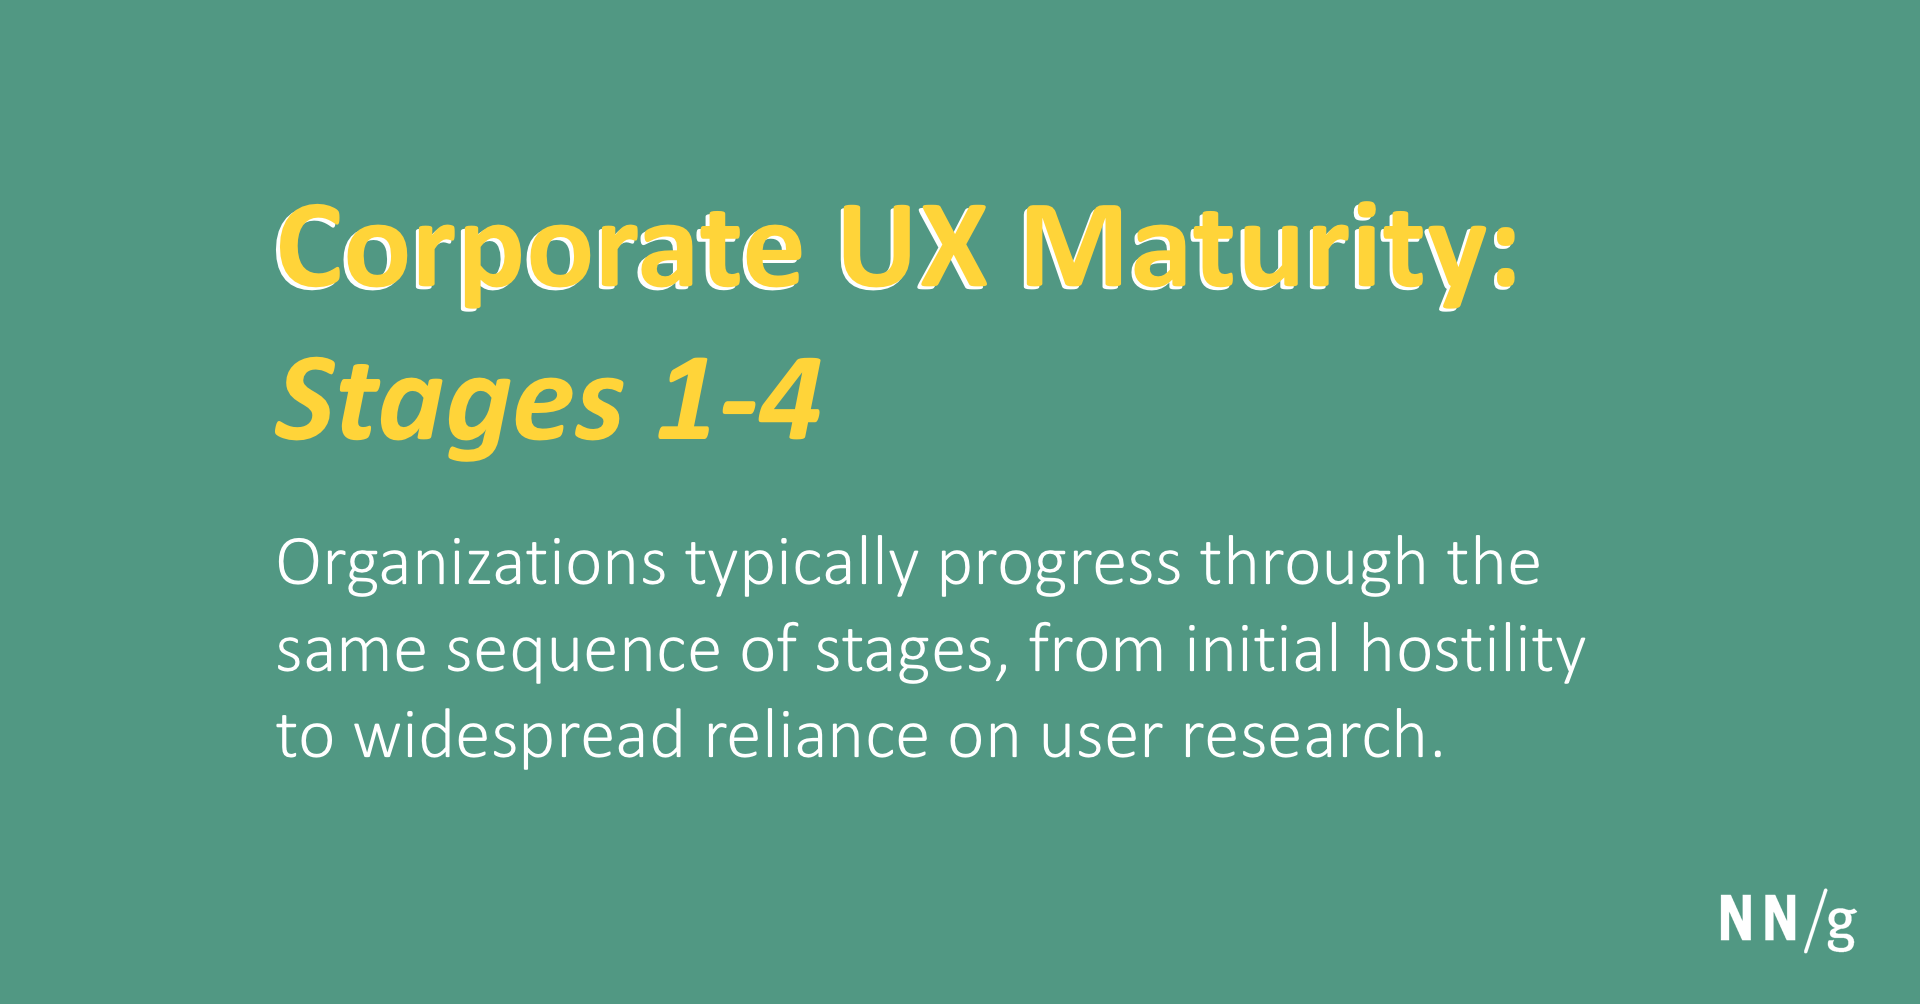 Corporate UX Maturity: Stages 1-4